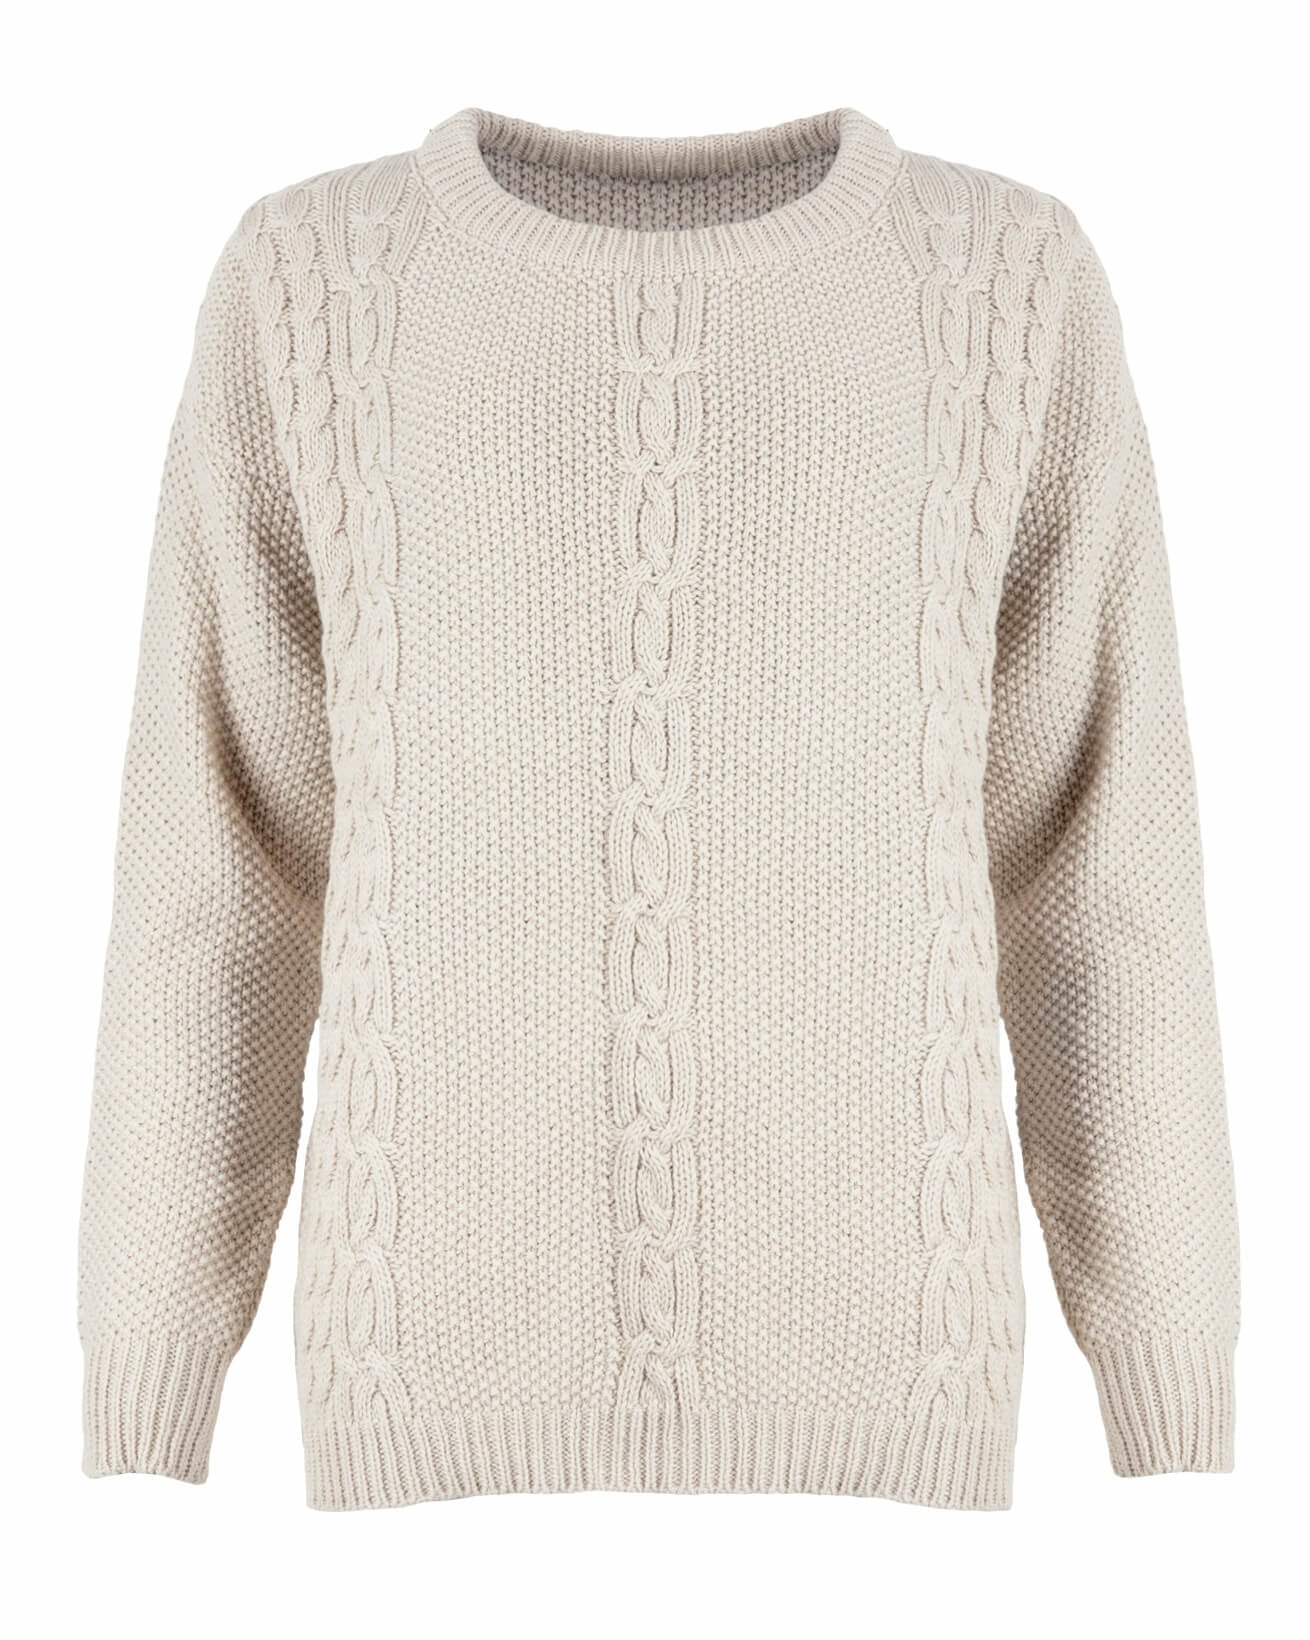 7563-cable-crew-neck-jumper-almond-front_comp.jpg